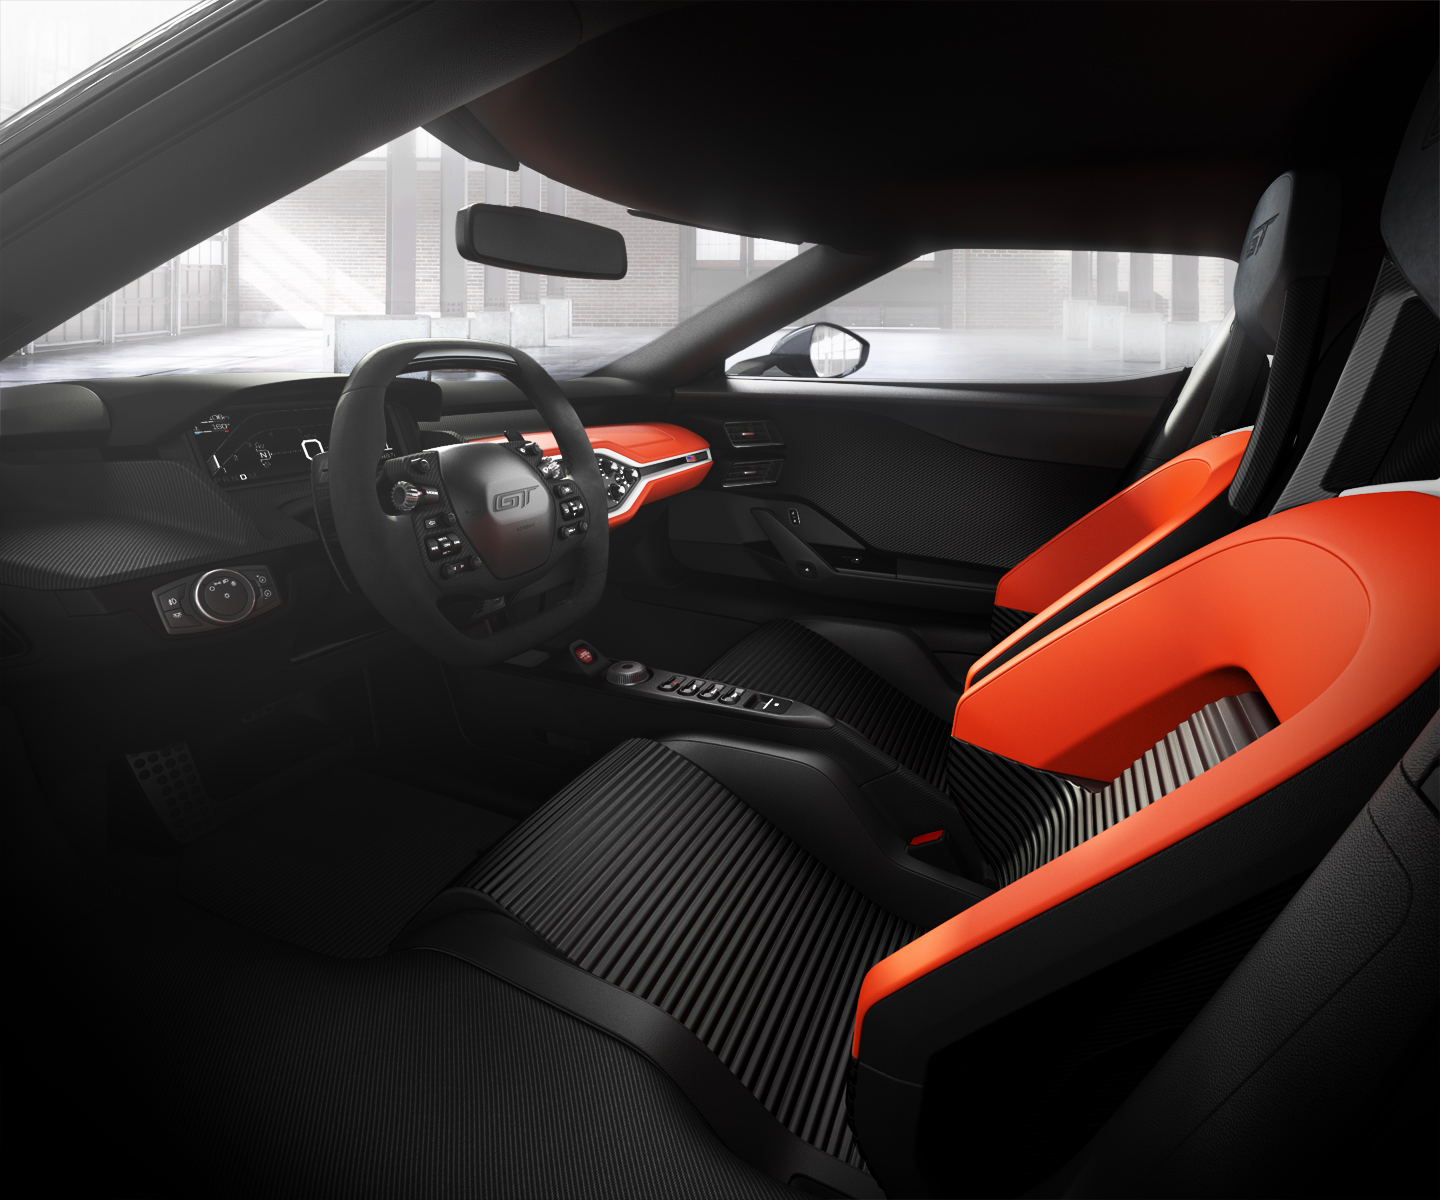 Ford Gt Has  Possible Visual Combinations _ford_gt_interior_launchcontrol_configurator_comp_v